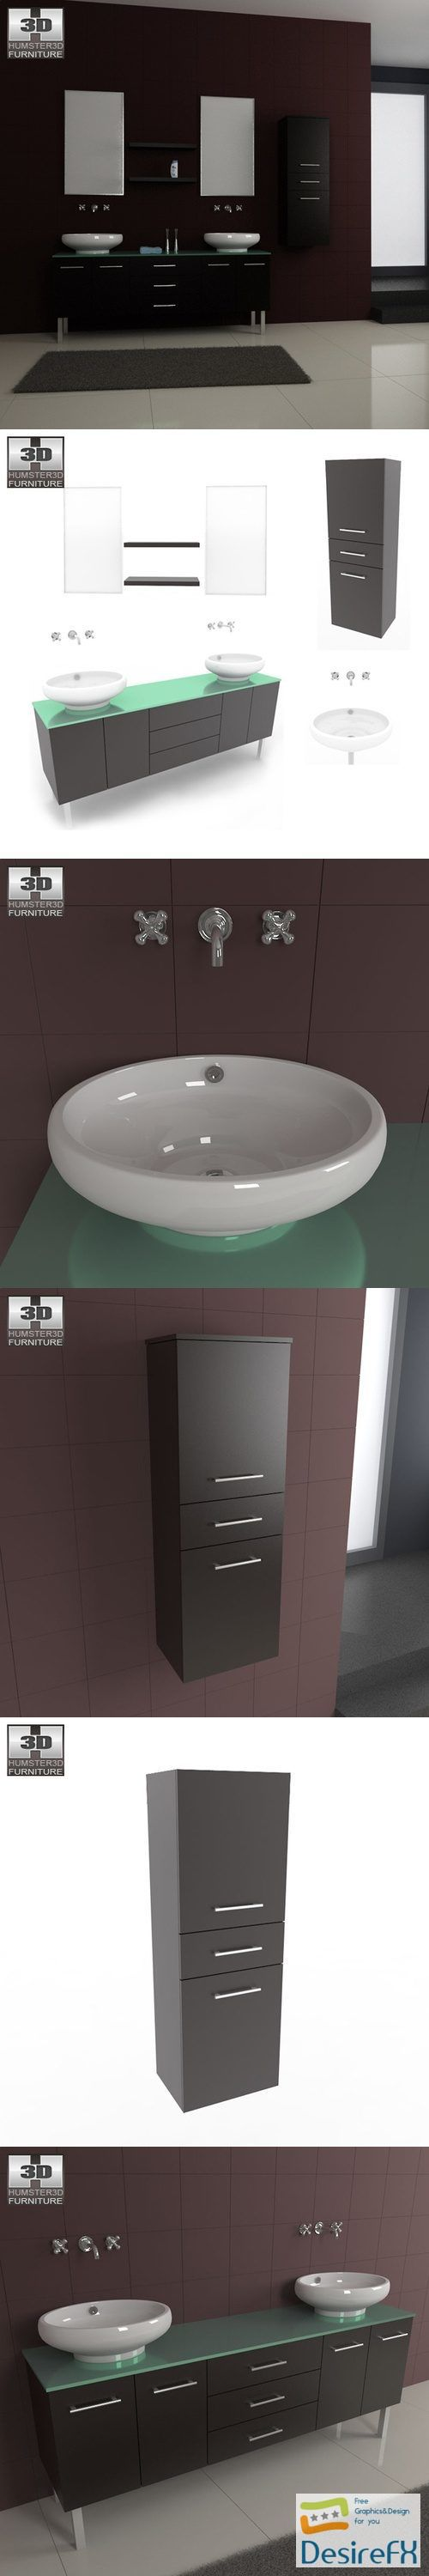 Bathroom Furniture 04 Set 3D Model